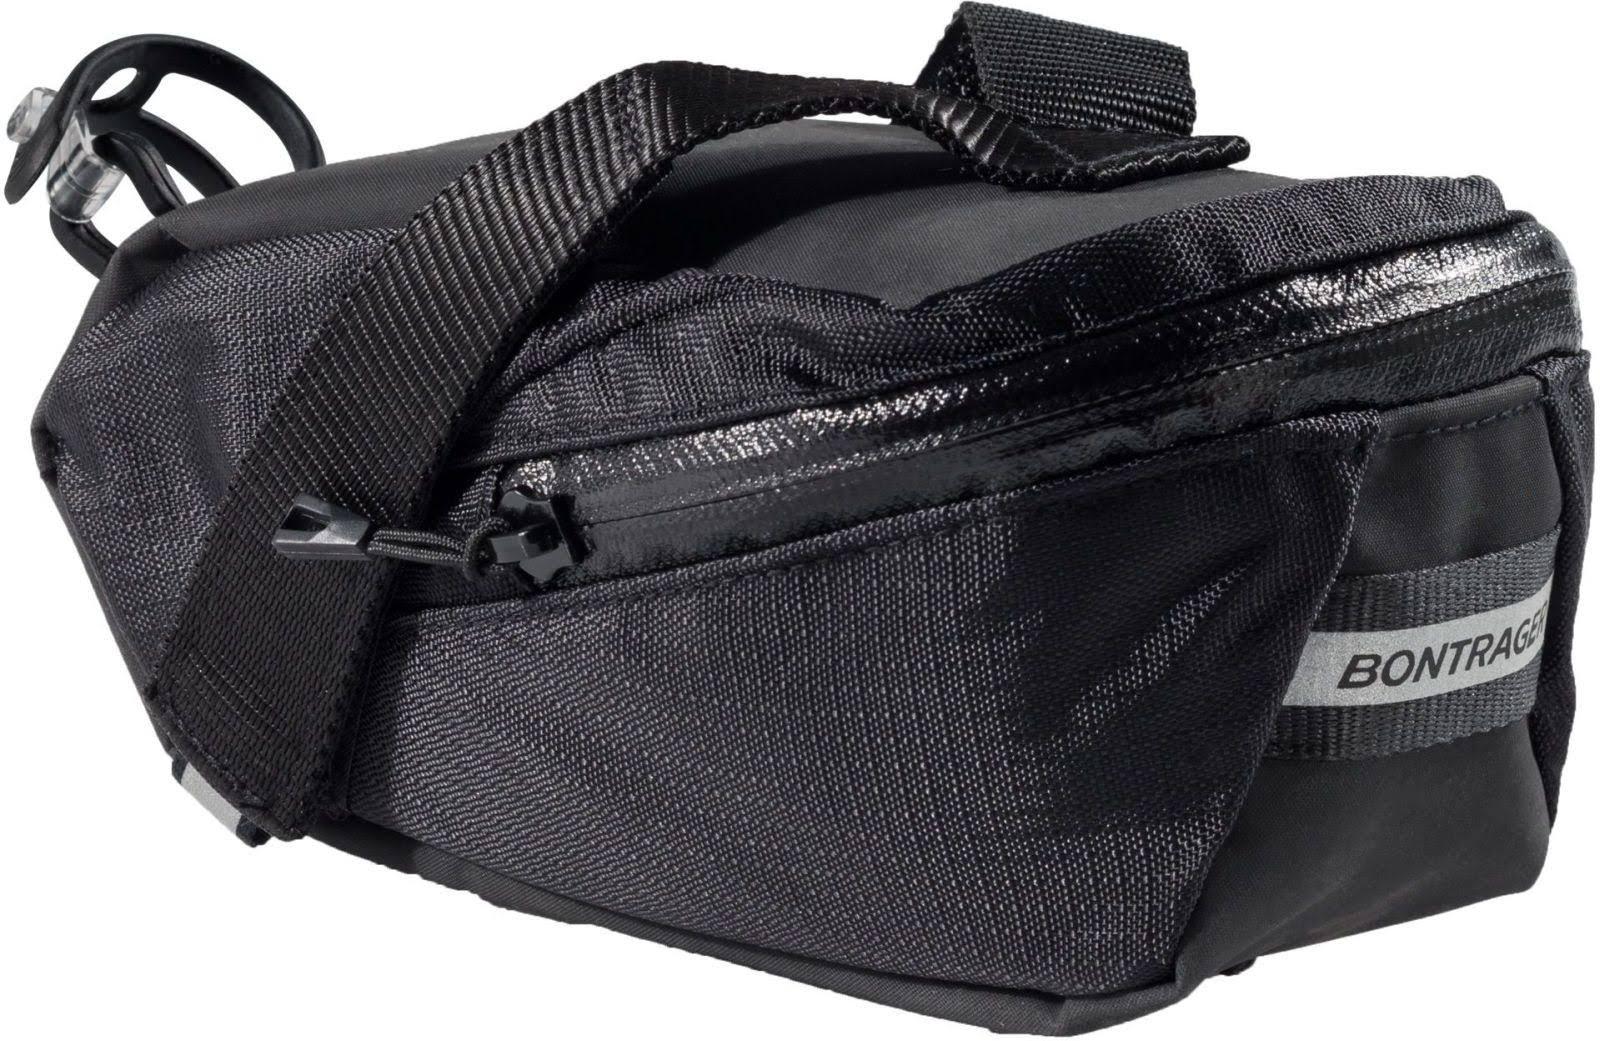 Bontrager Bag Elite Seat Pack - Large, Black